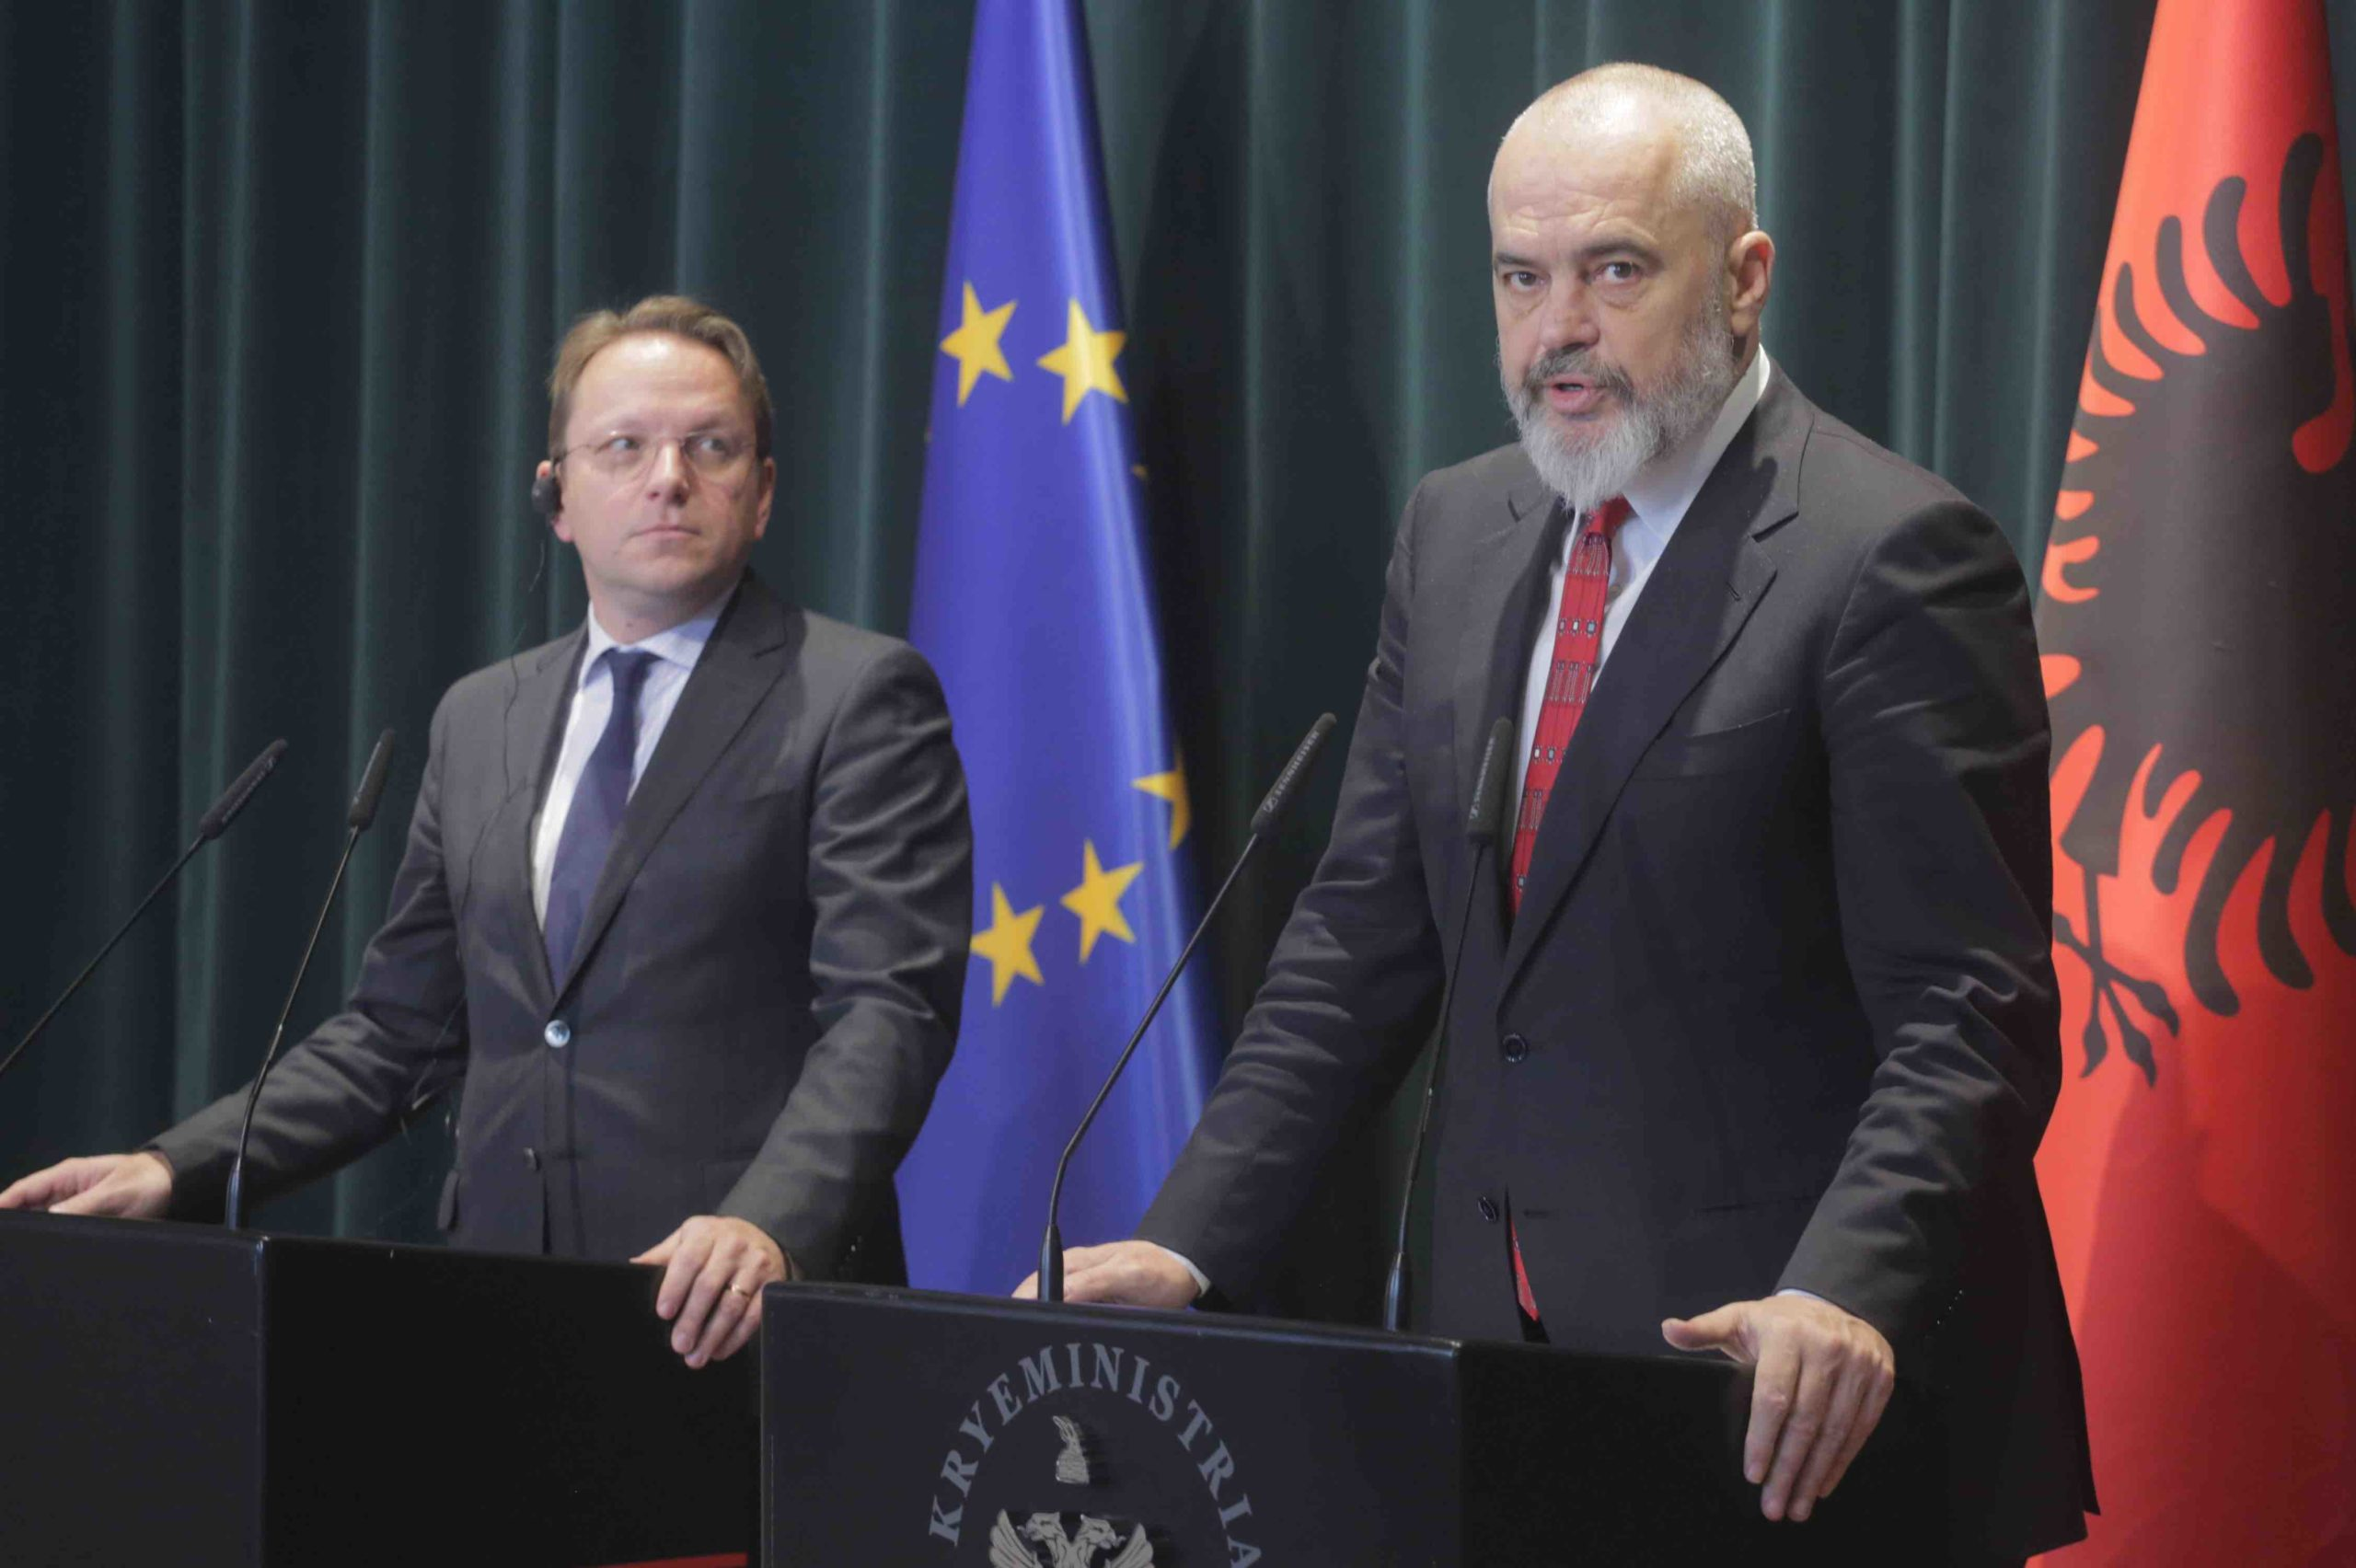 Albanian Prime Minister Challenges European Commission on Changes to Electoral System